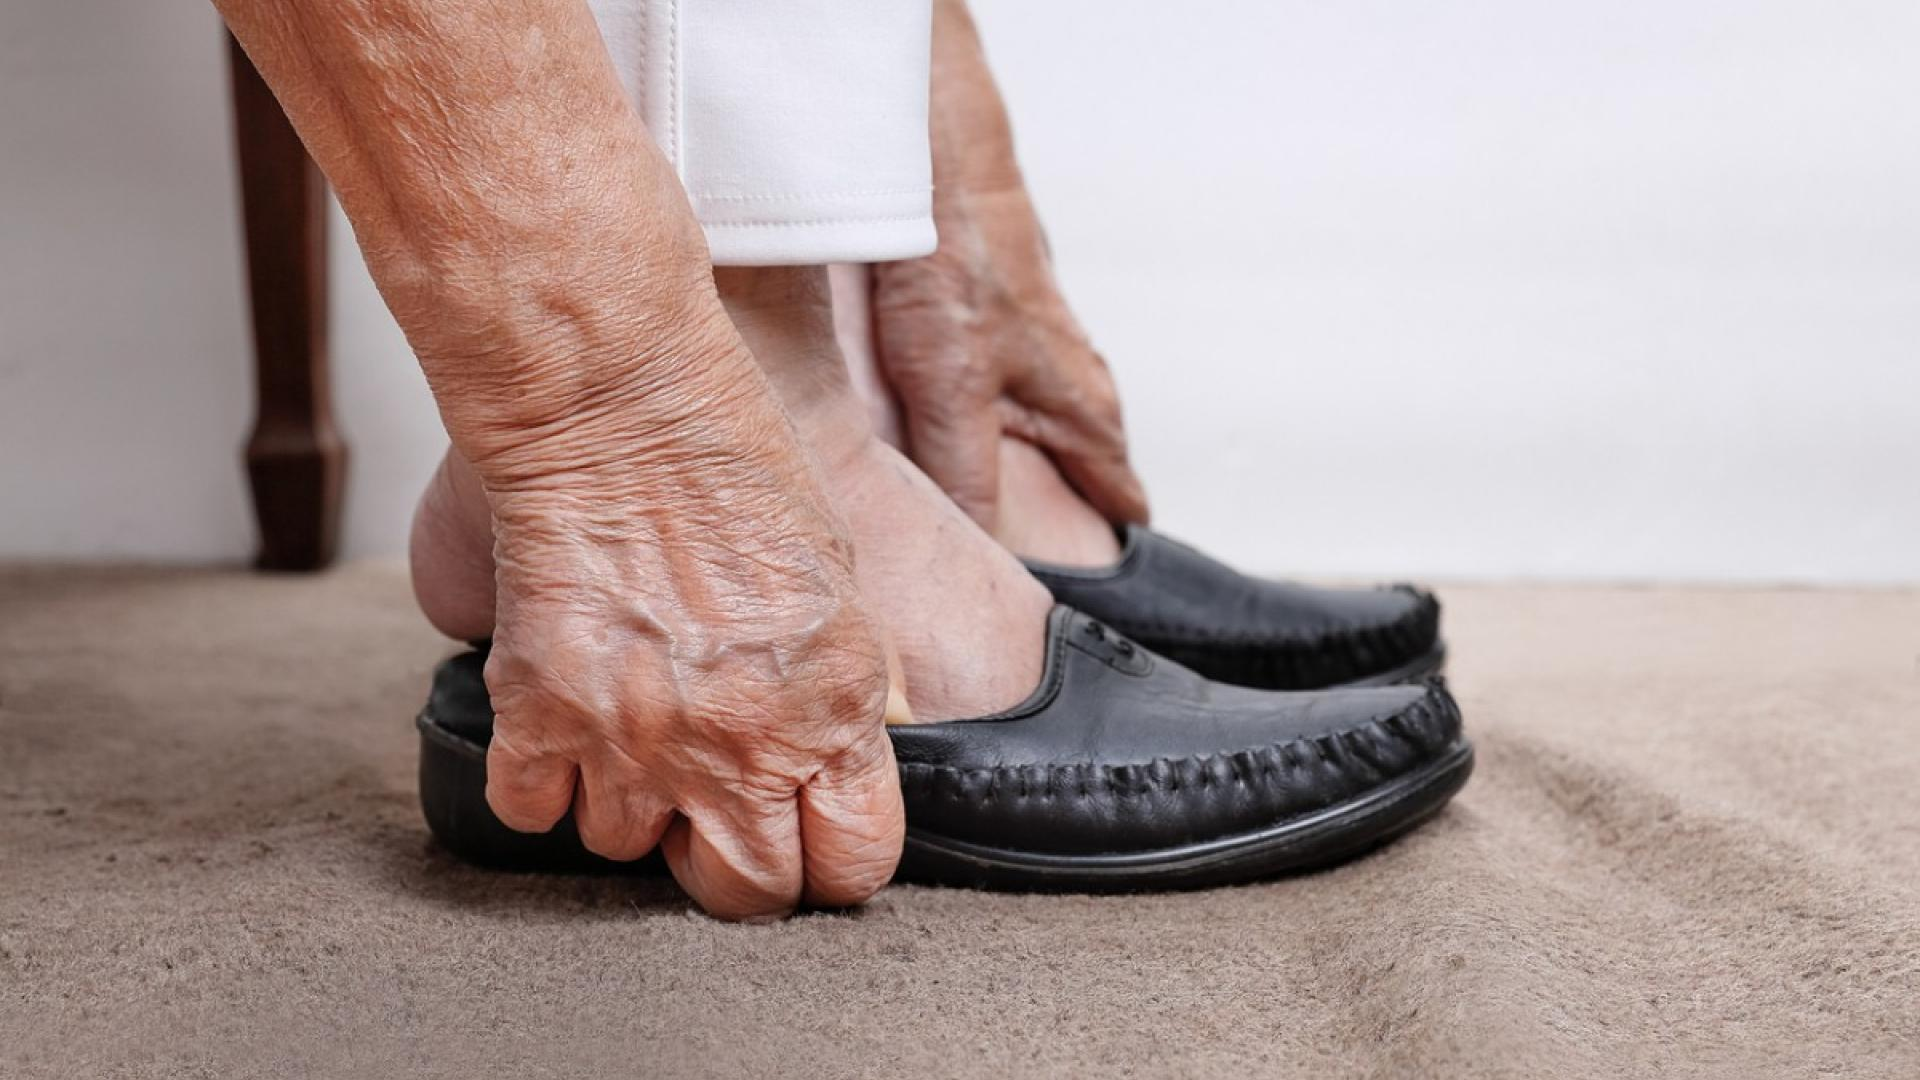 GPS trackers in slippers to be issued to dementia patients